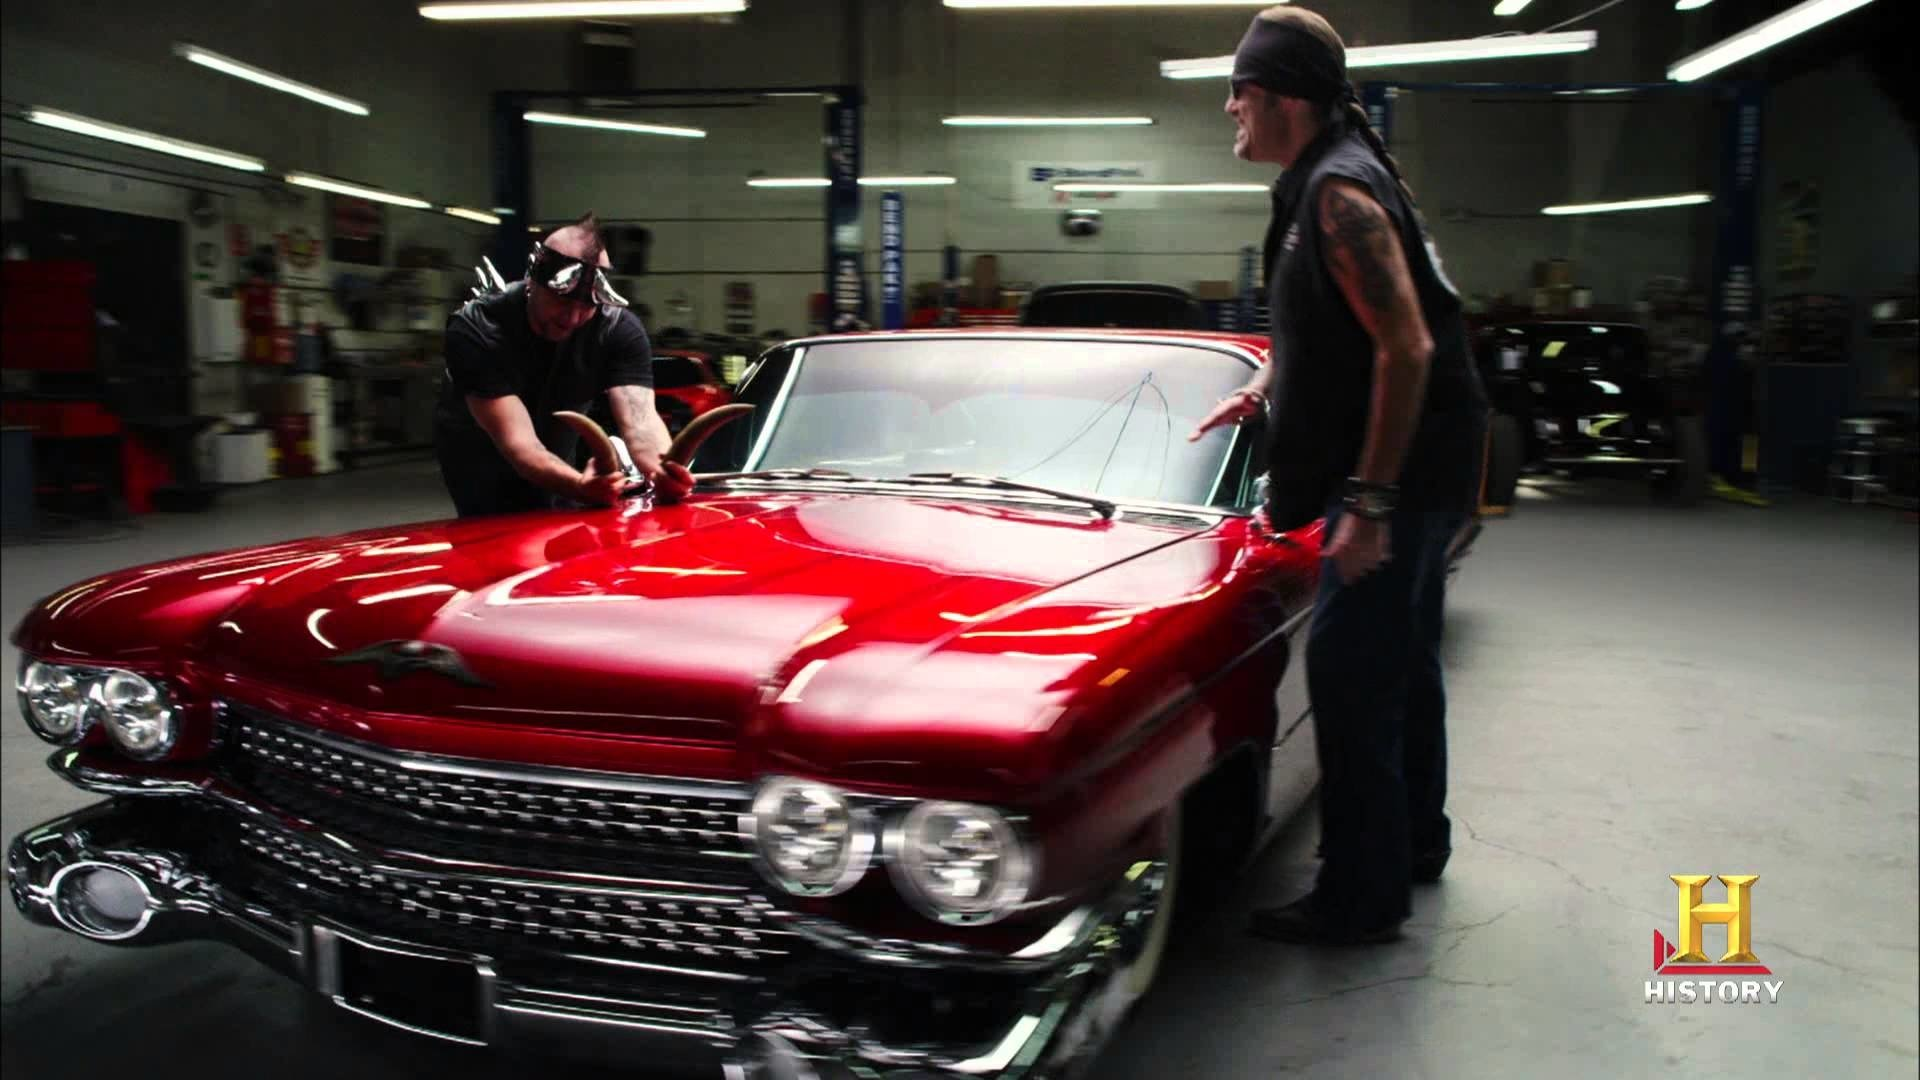 Counting Cars Hd Wallpaper